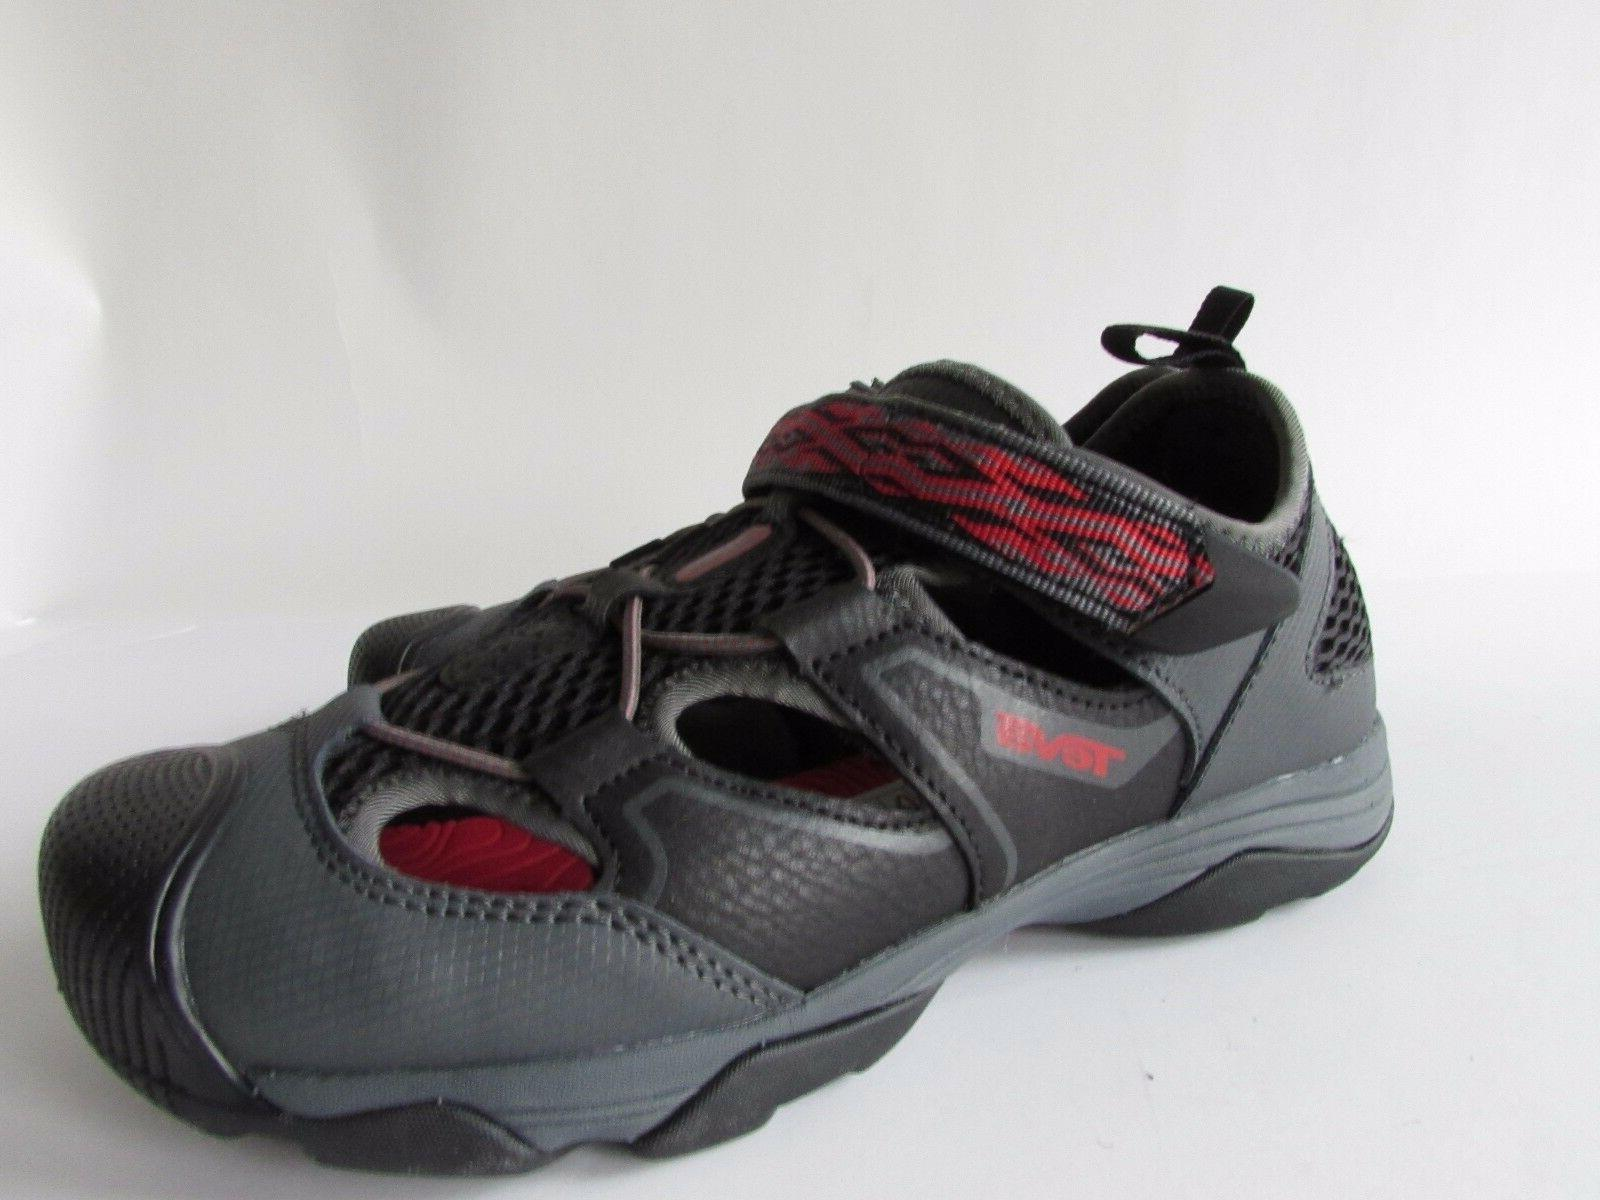 TEVA Sport Water Youth size 5